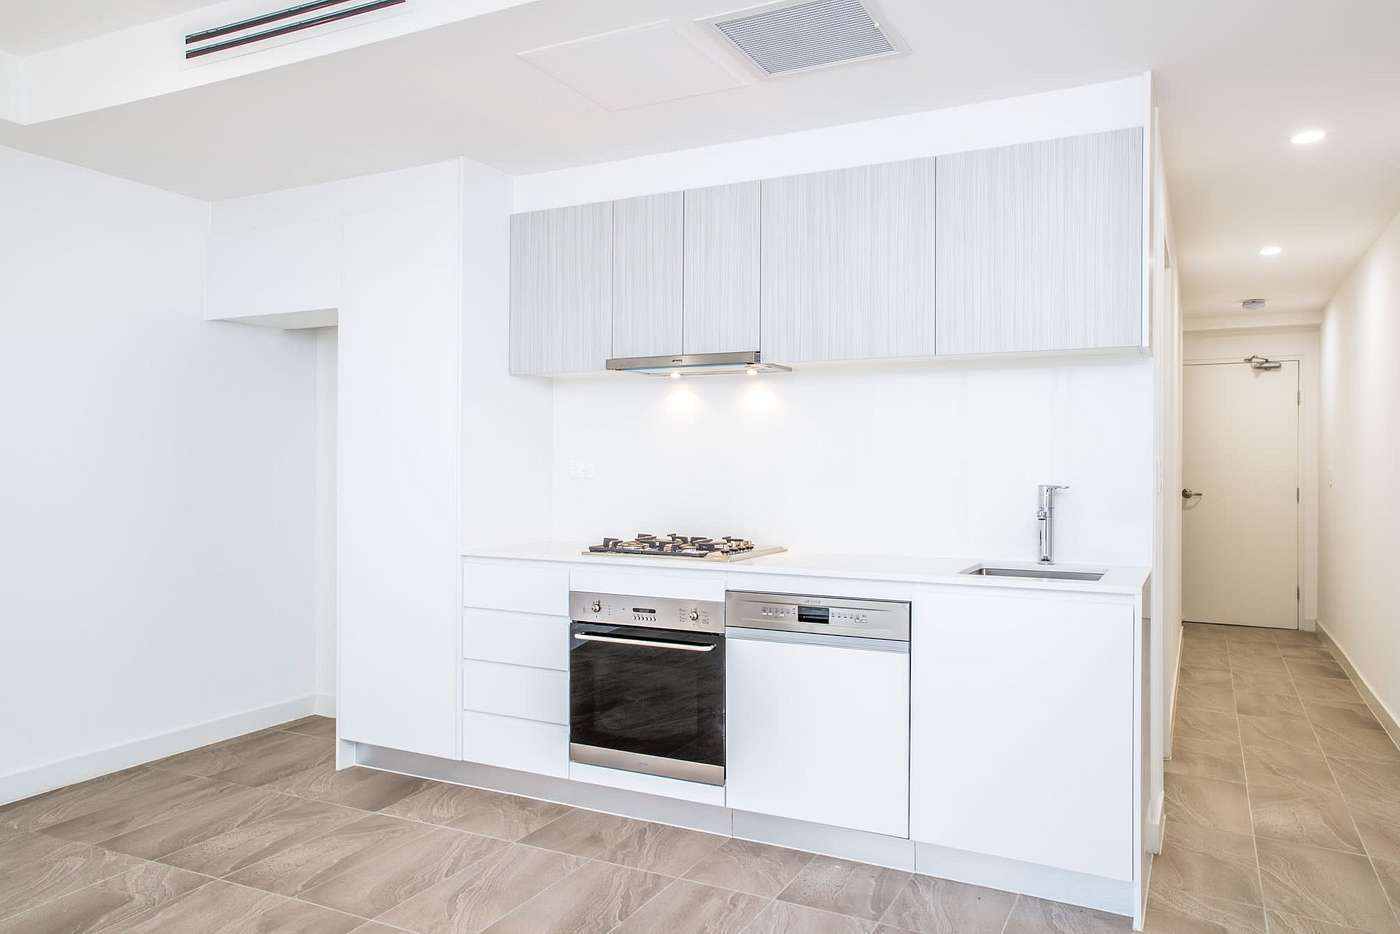 Sixth view of Homely apartment listing, G05/23 Pacific Parade, Dee Why NSW 2099